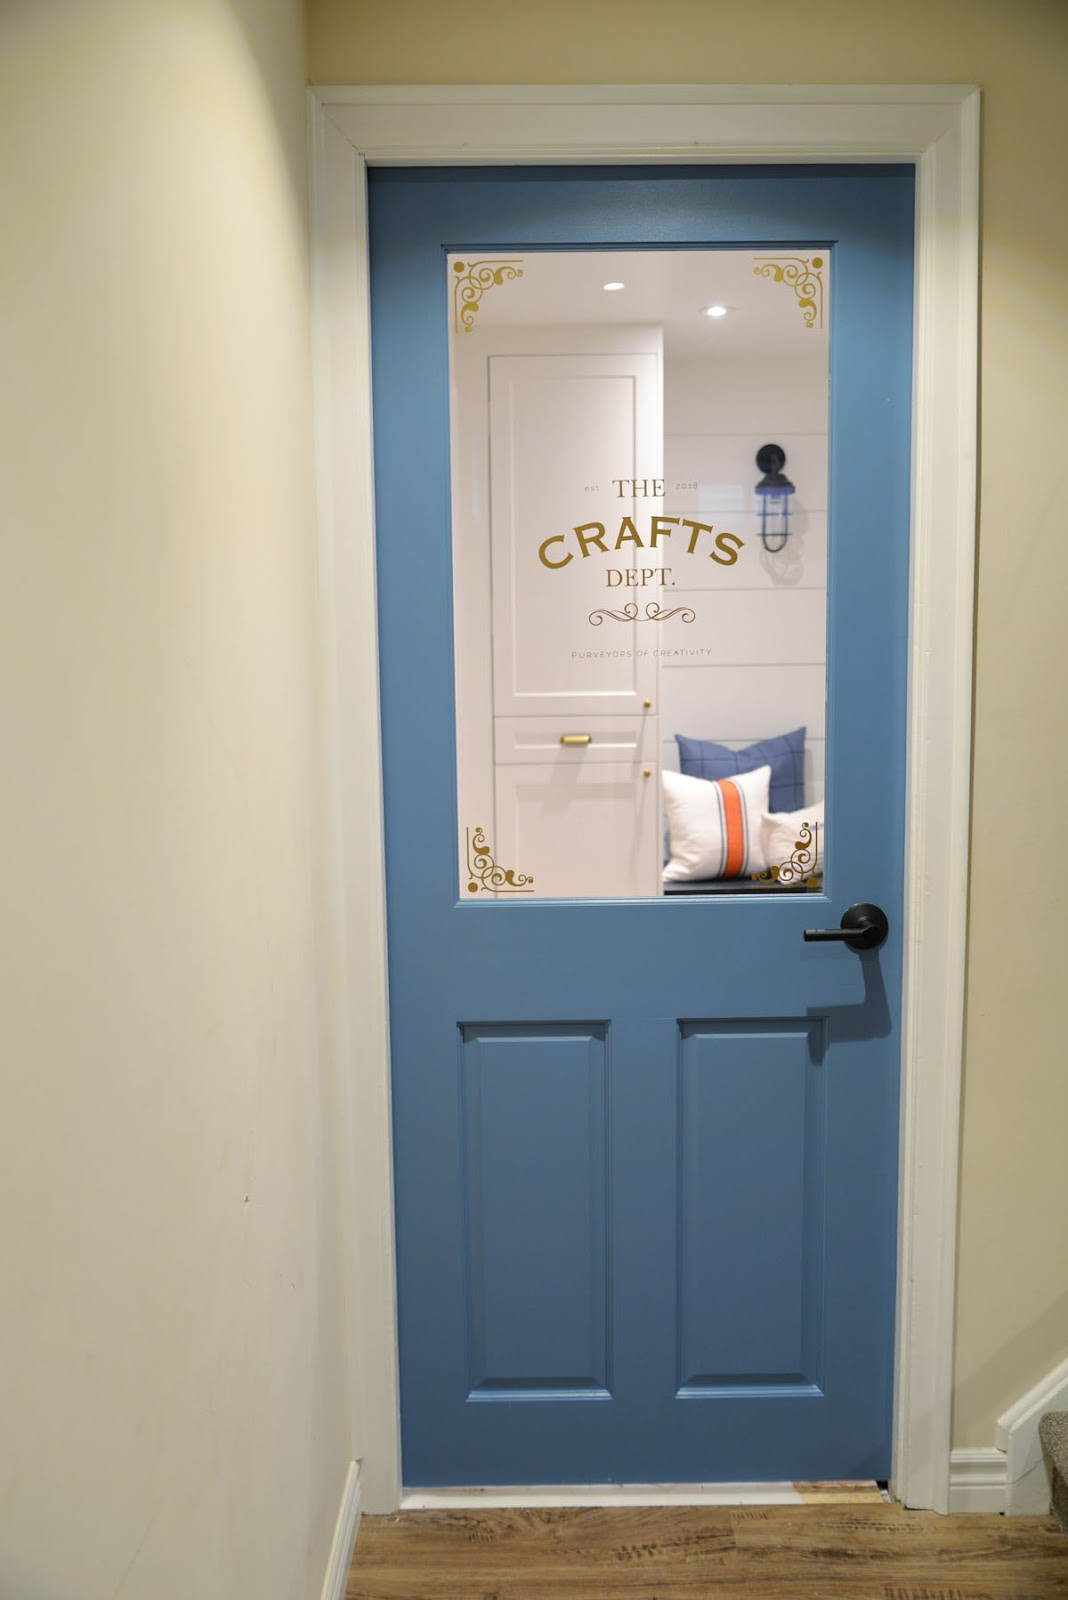 Projectcraftsdept A Craft Room Door Rambling Renovators